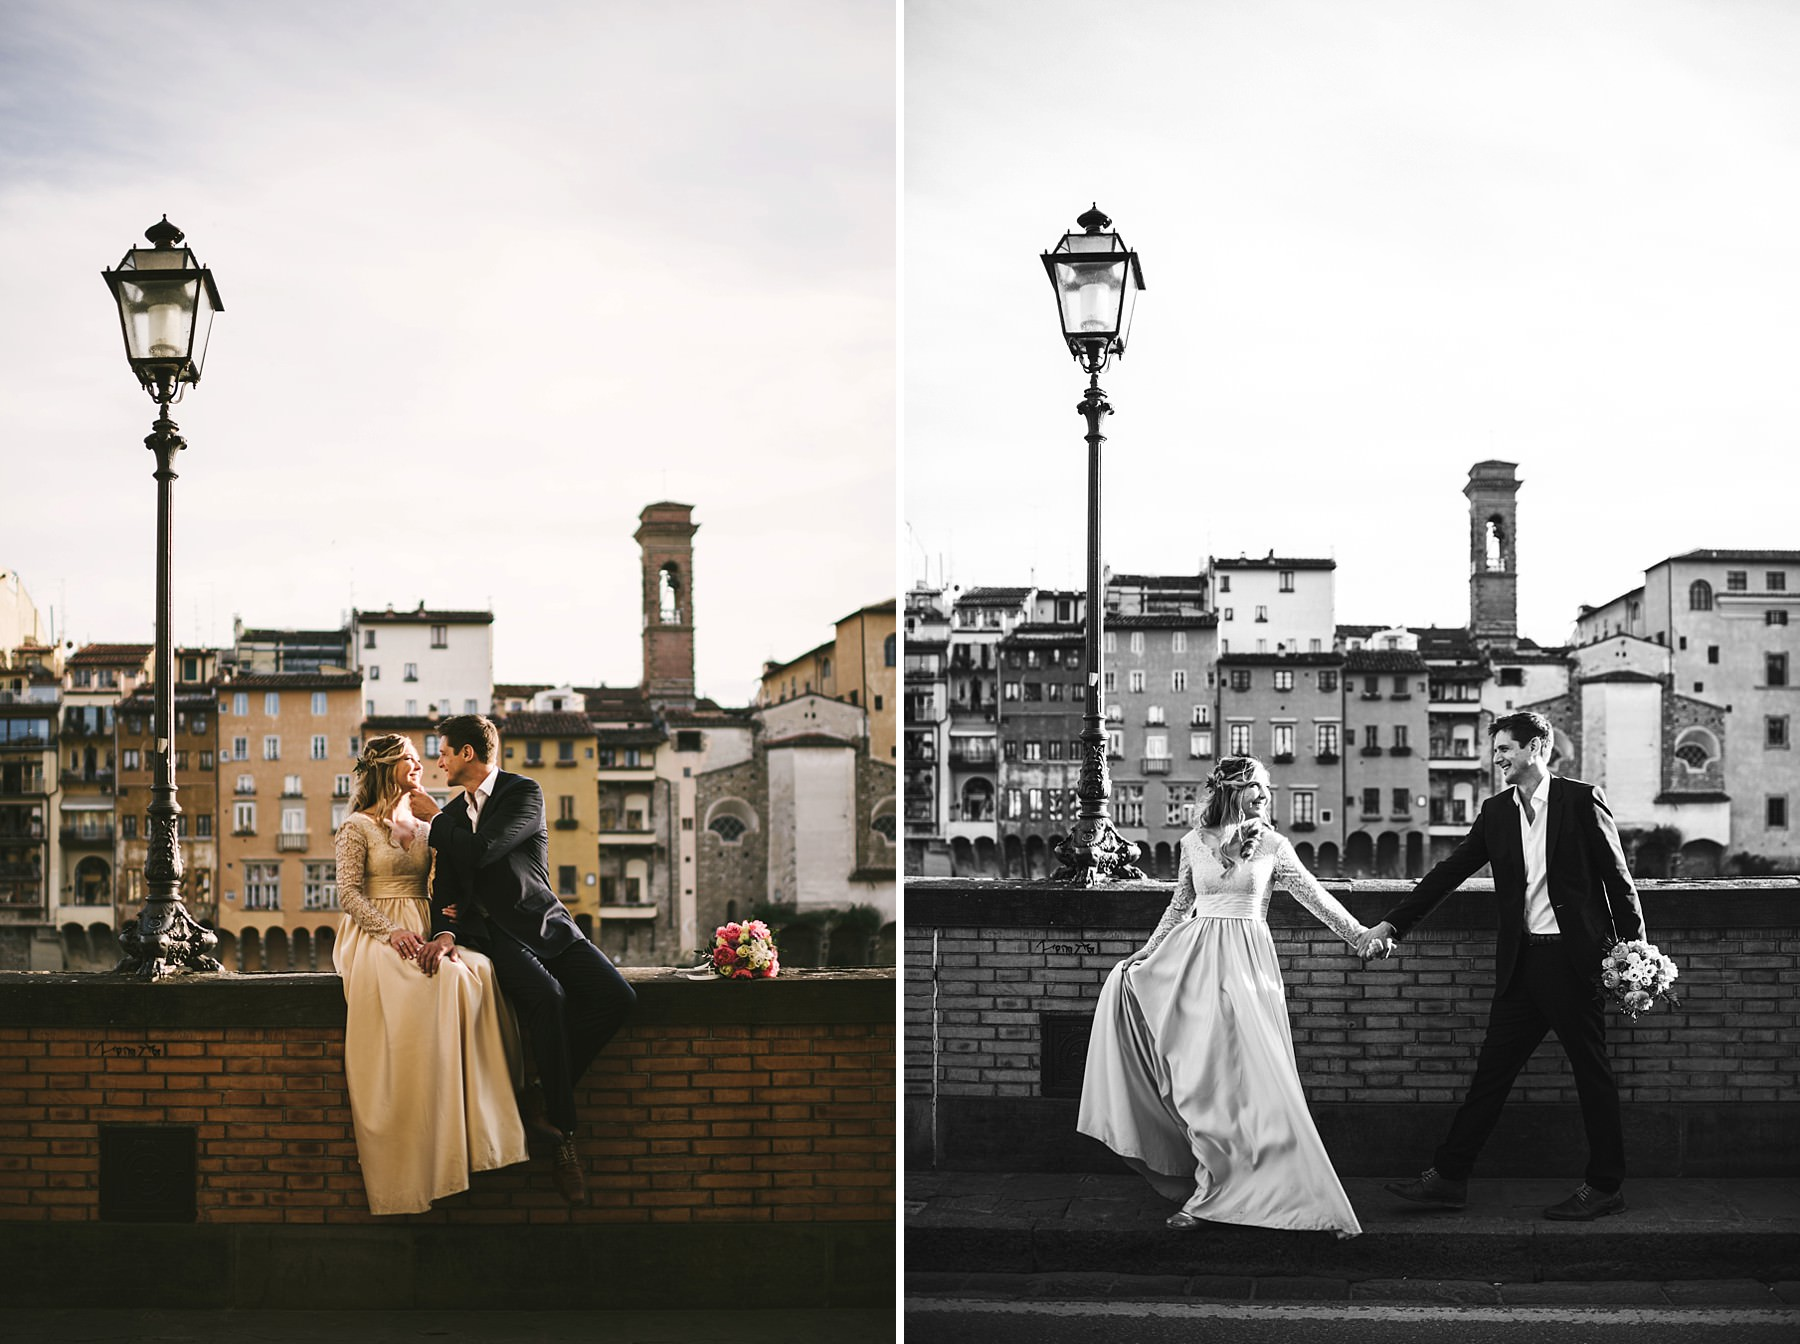 Dreamy and elegant couple portrait photo shoot with vows renewal in Florence near Palazzo Vecchio